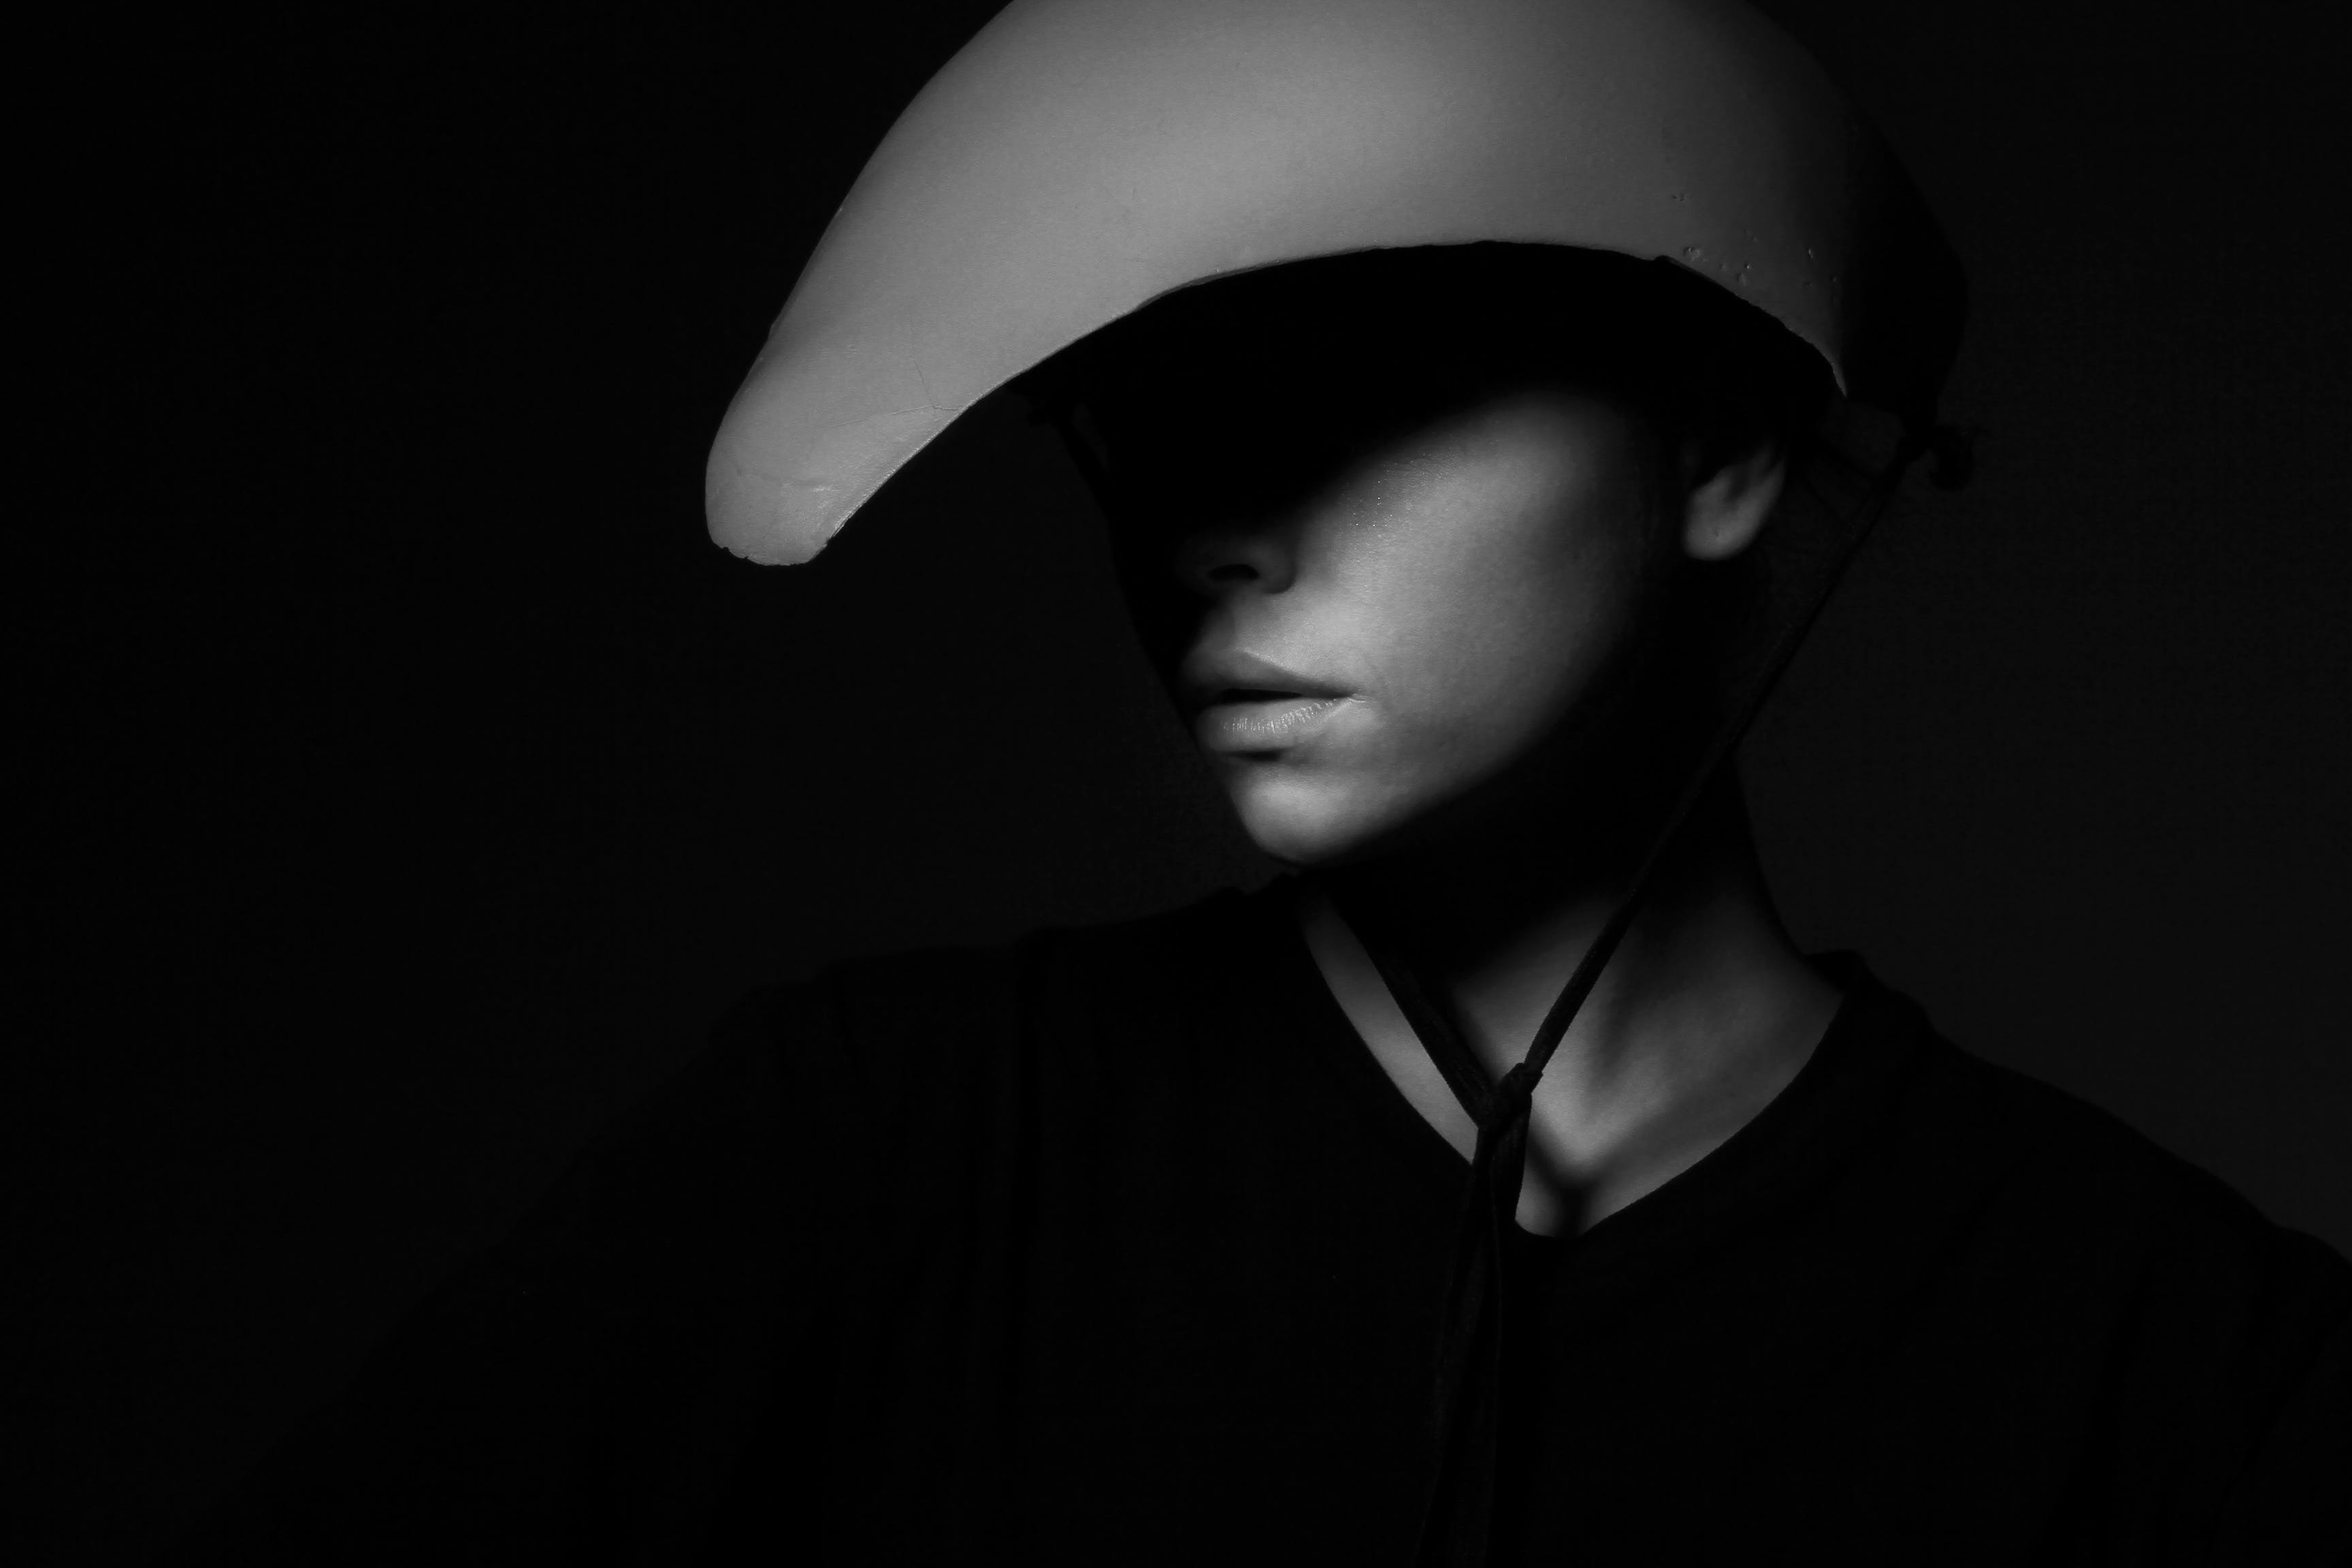 Grayscale Photography of Person Wearing Hat